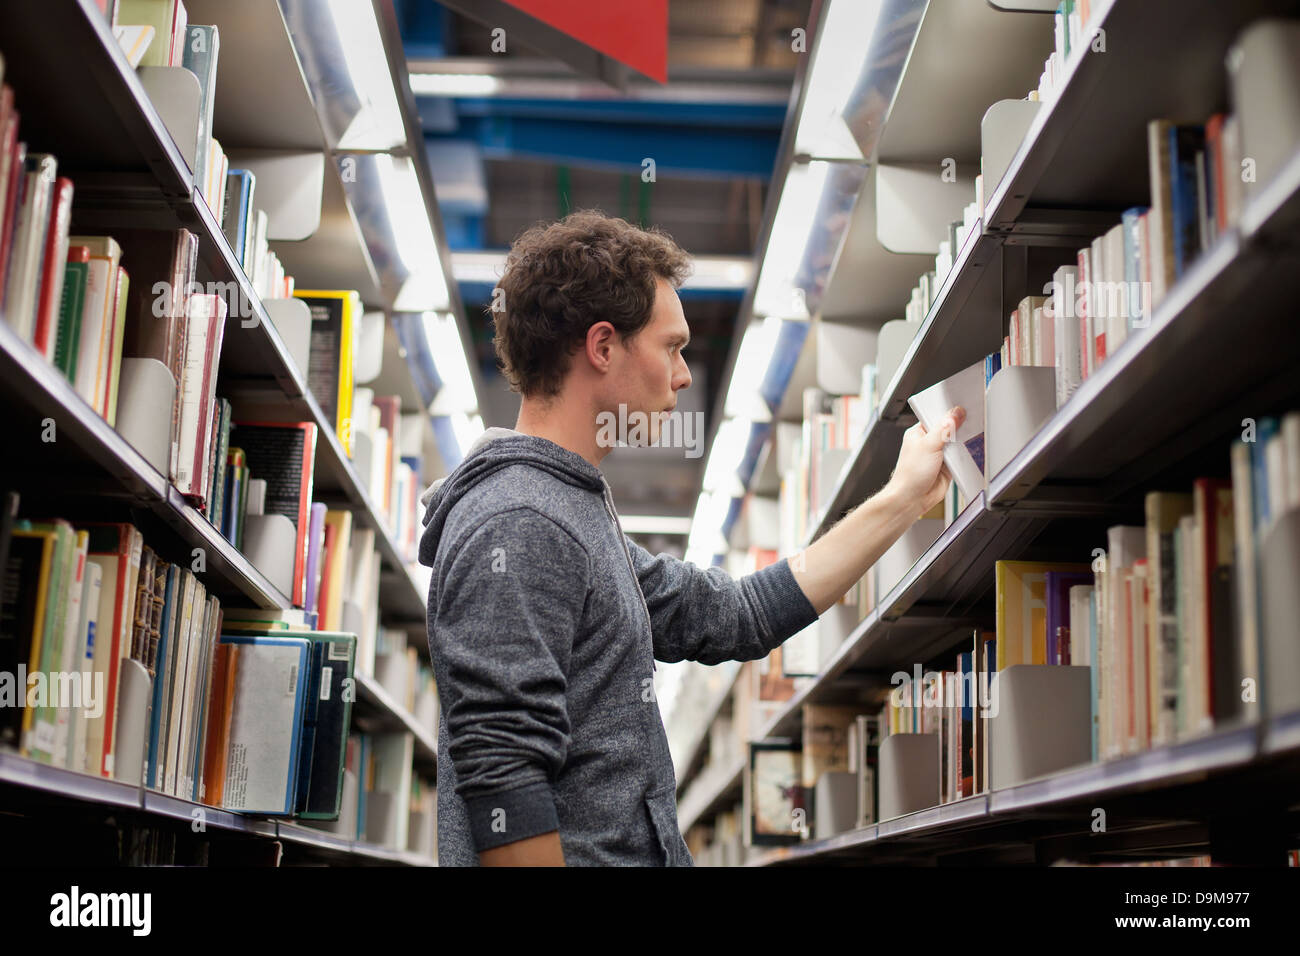 student in book shop or library - Stock Image